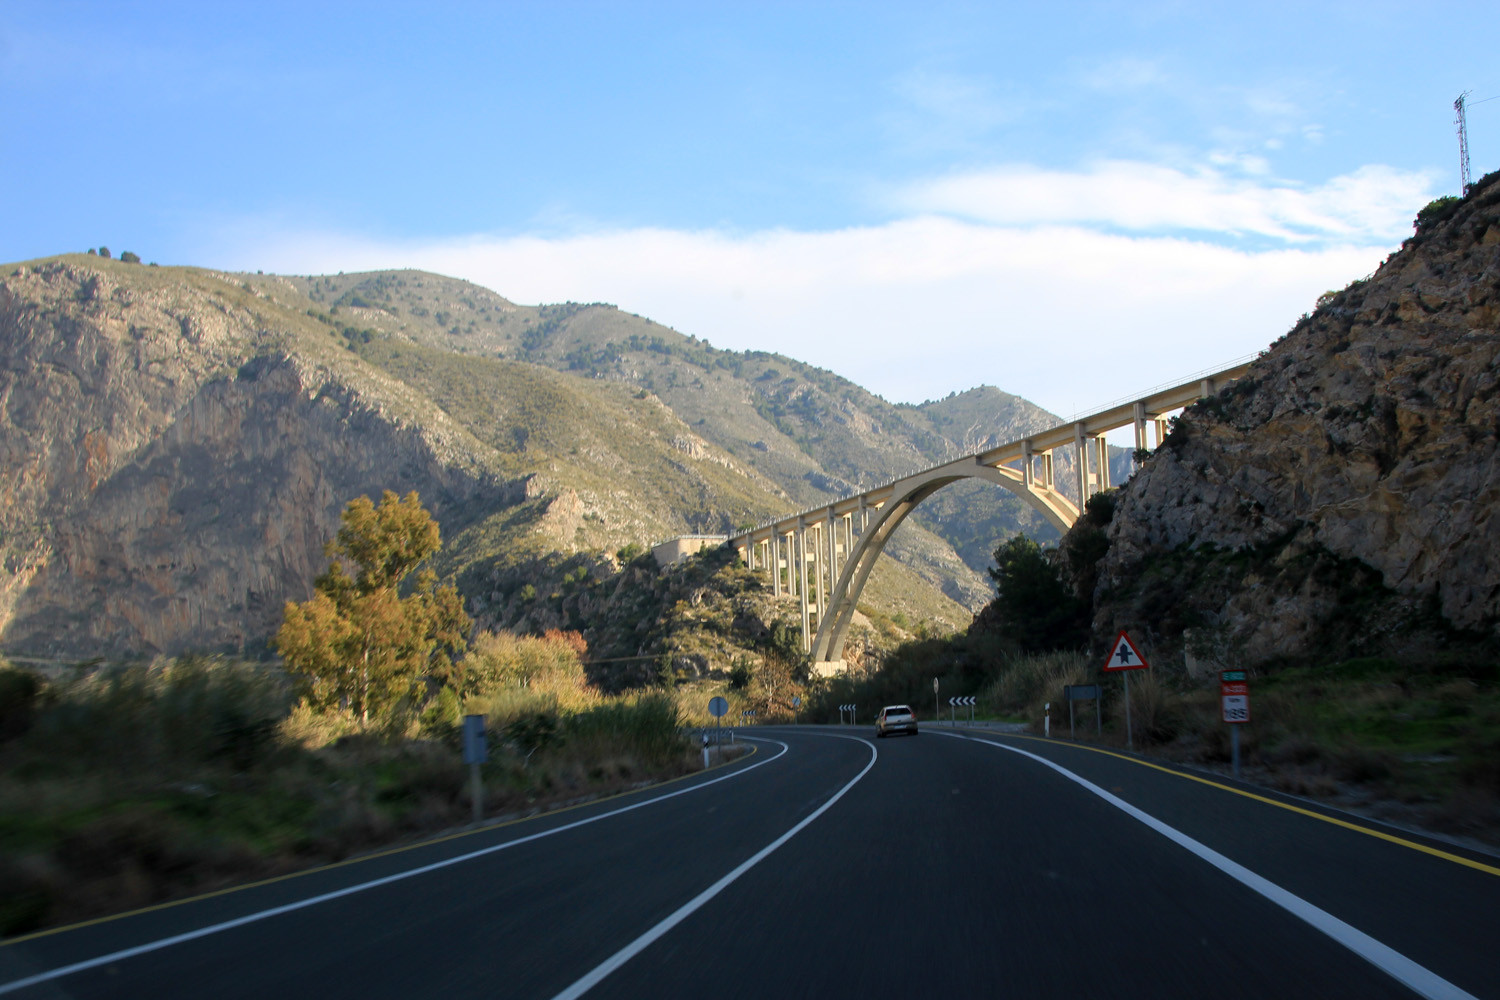 The Canyon of the Guadalfeo river